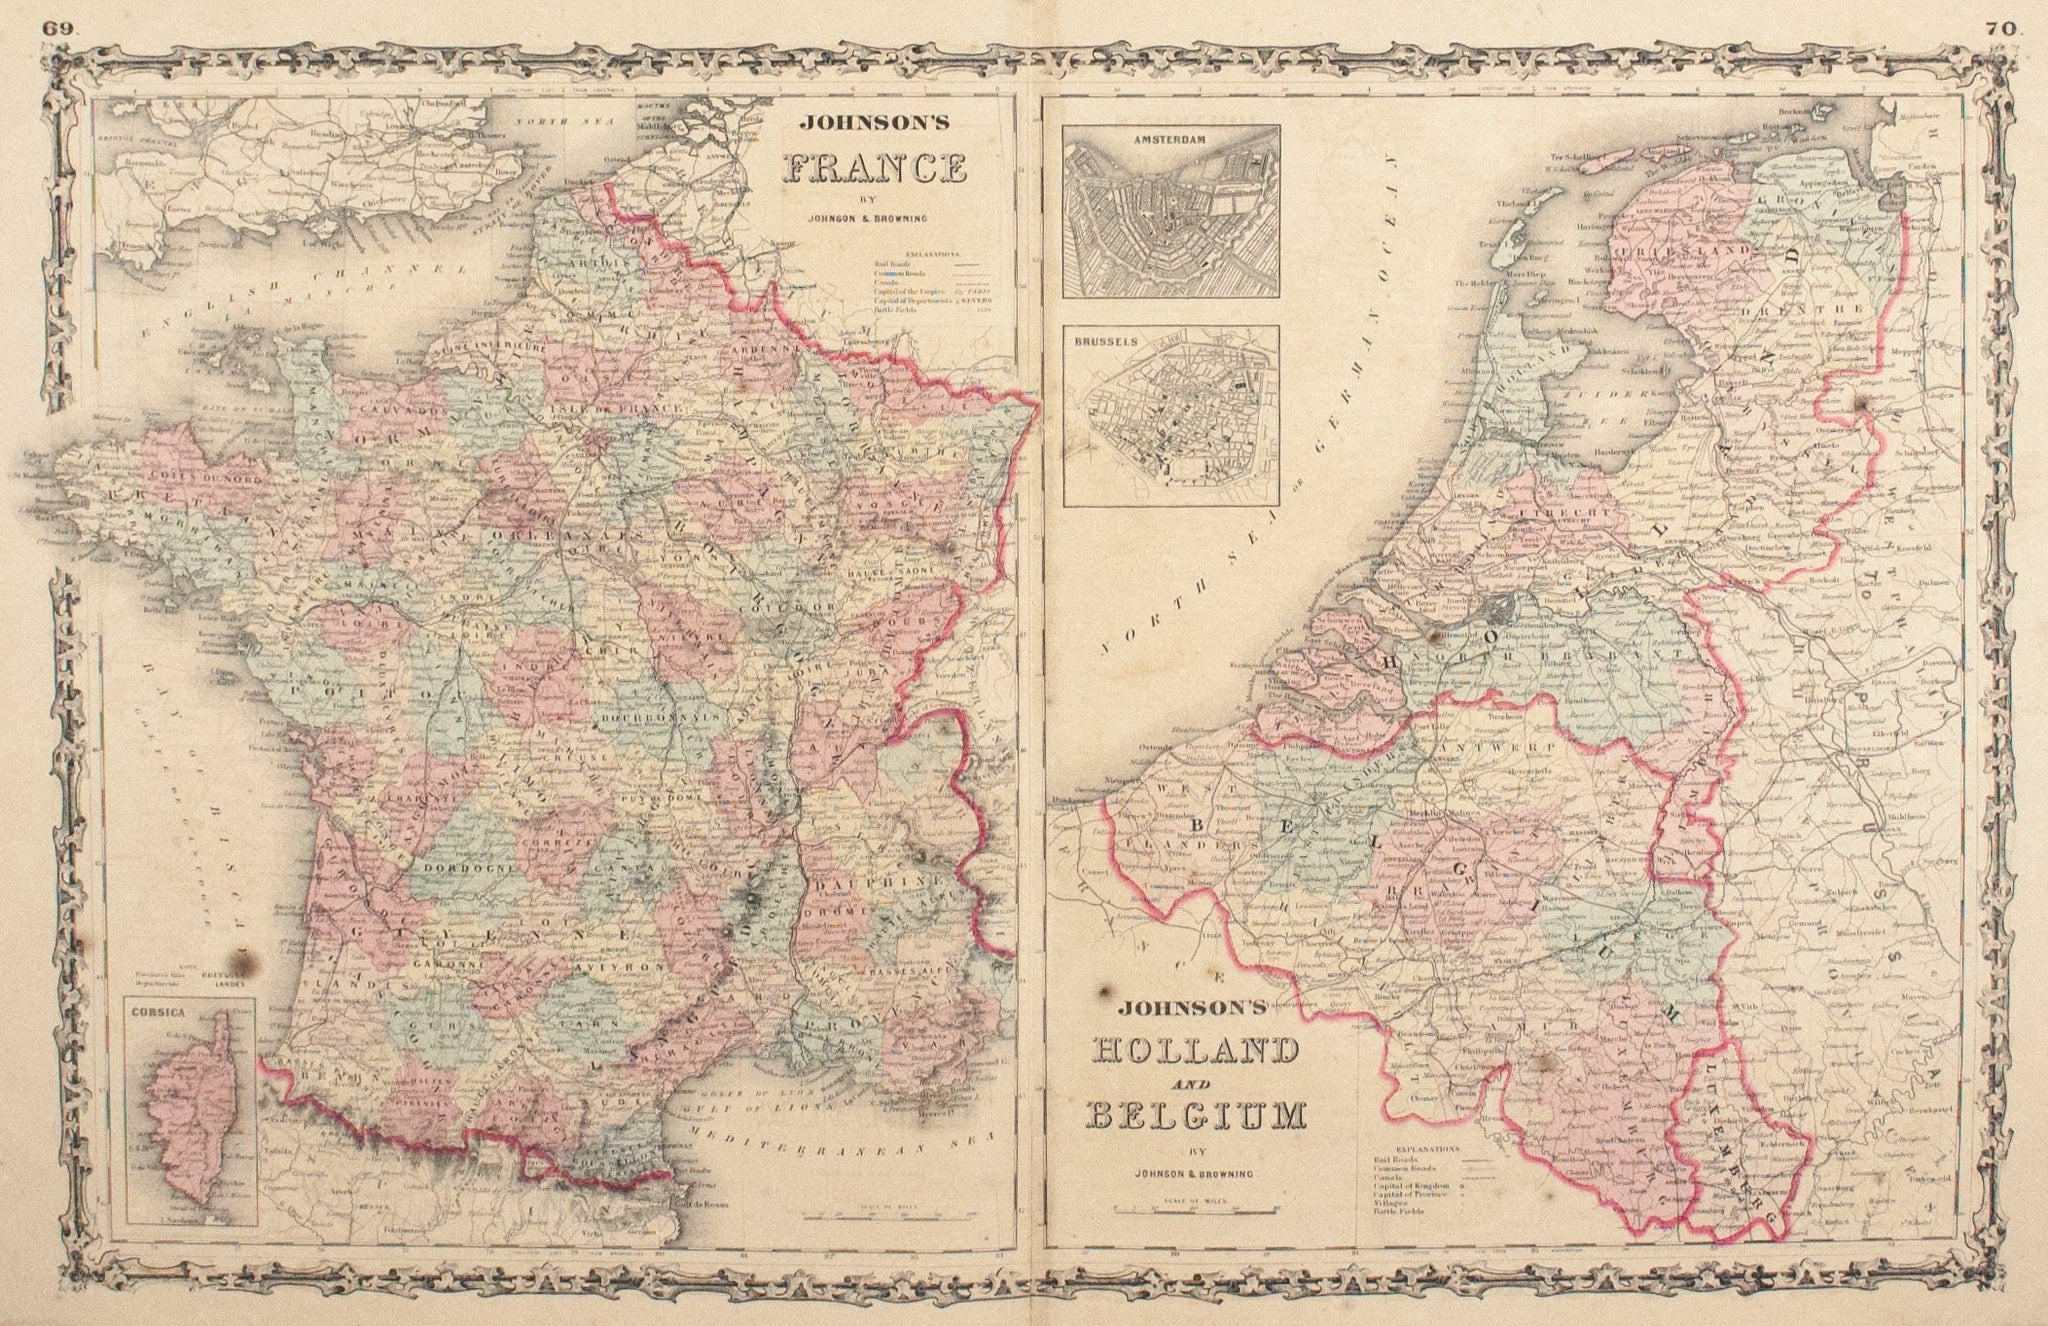 Map Of France And Holland Belgium.1860 France Holland And Belgium Johnson Historic Accents